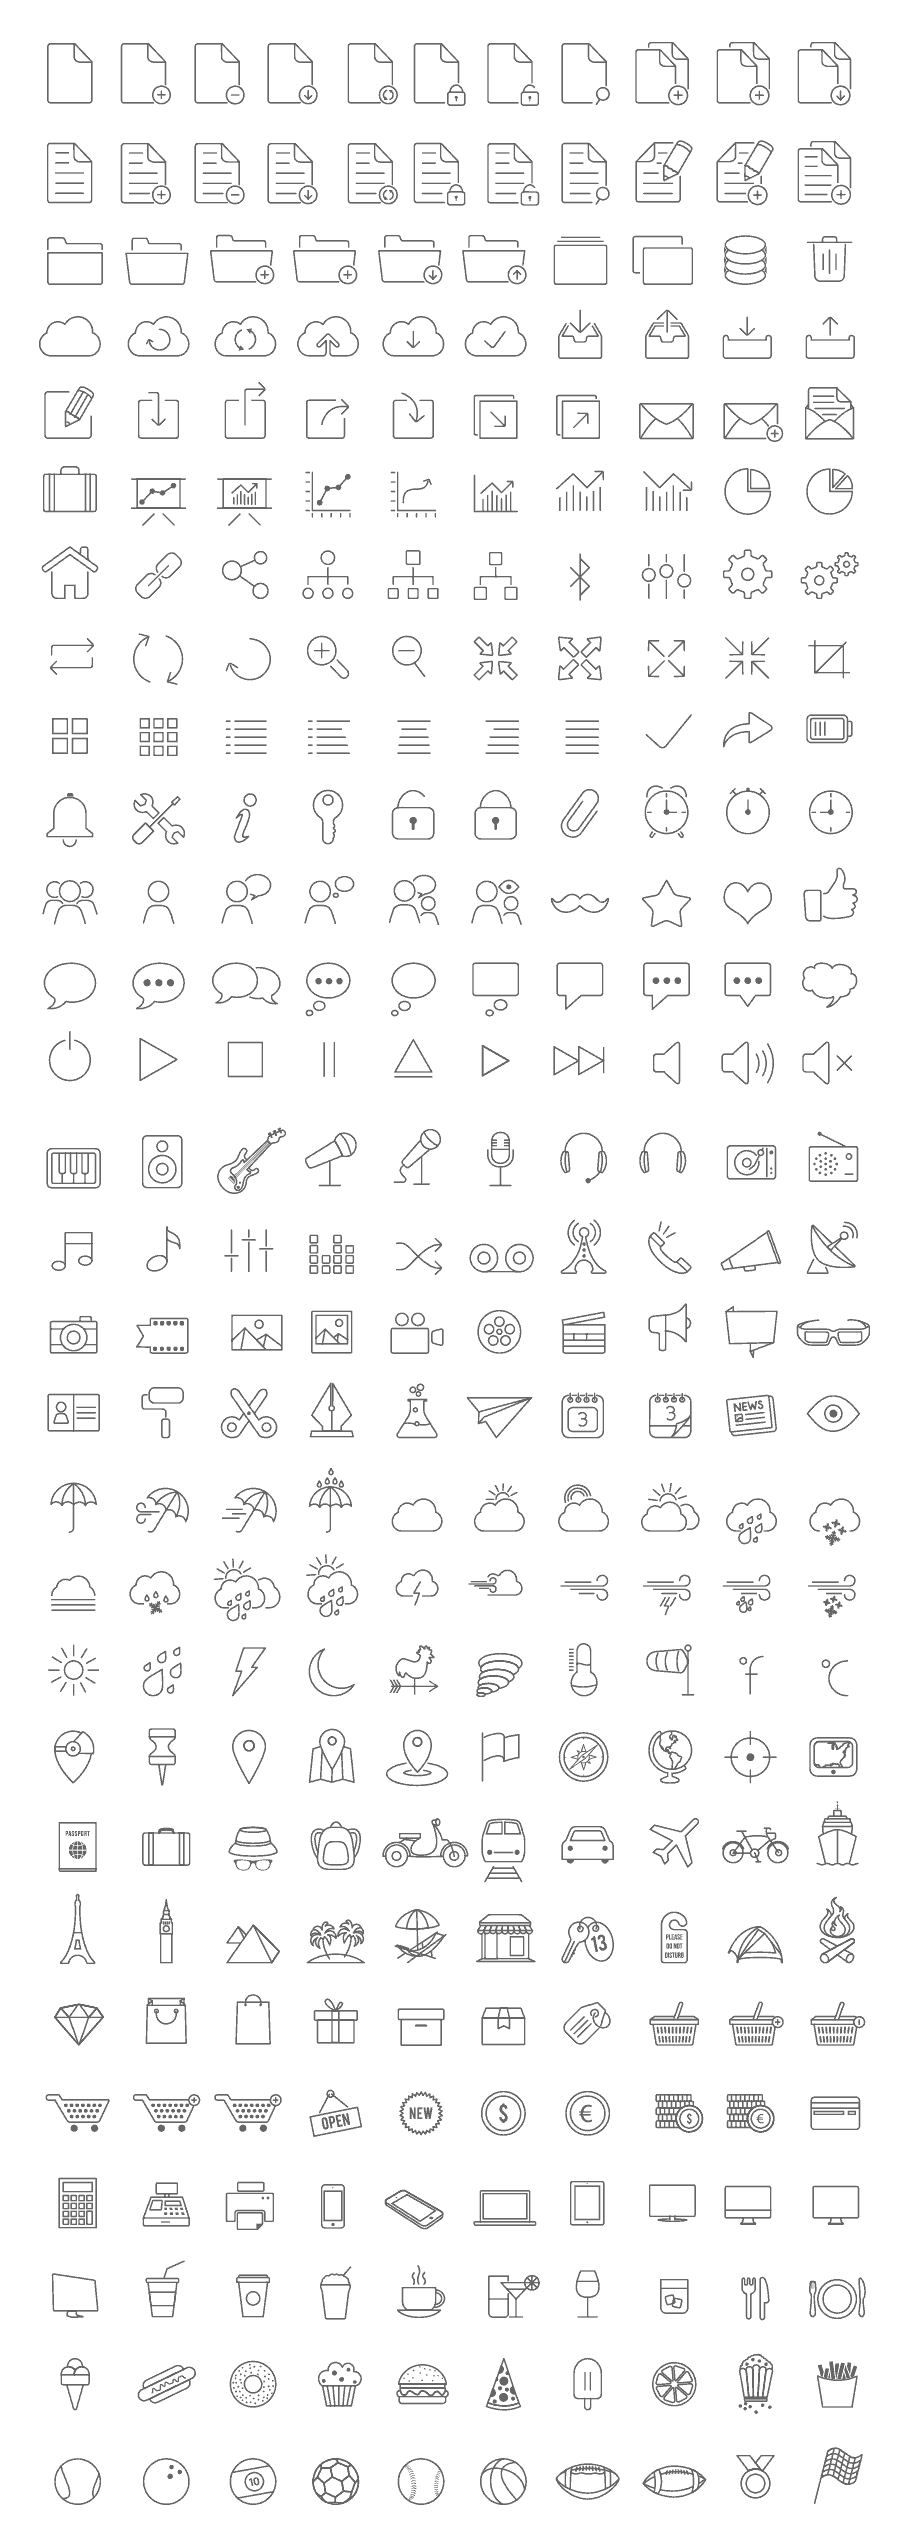 tonicons-outline-icons